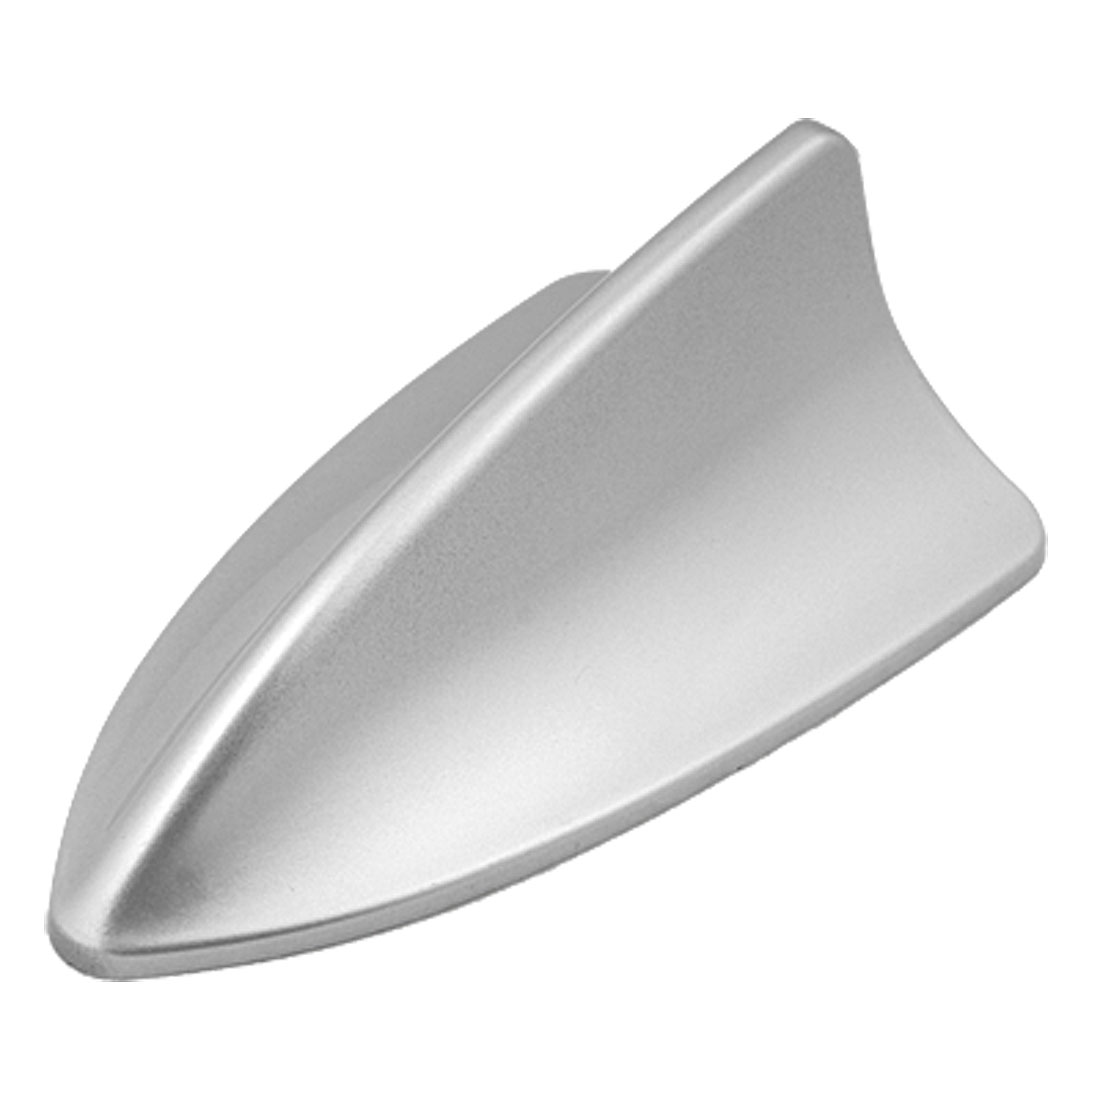 Car Roof Mounted Silver Tone Plastic Shark Fin Antenna Ornament